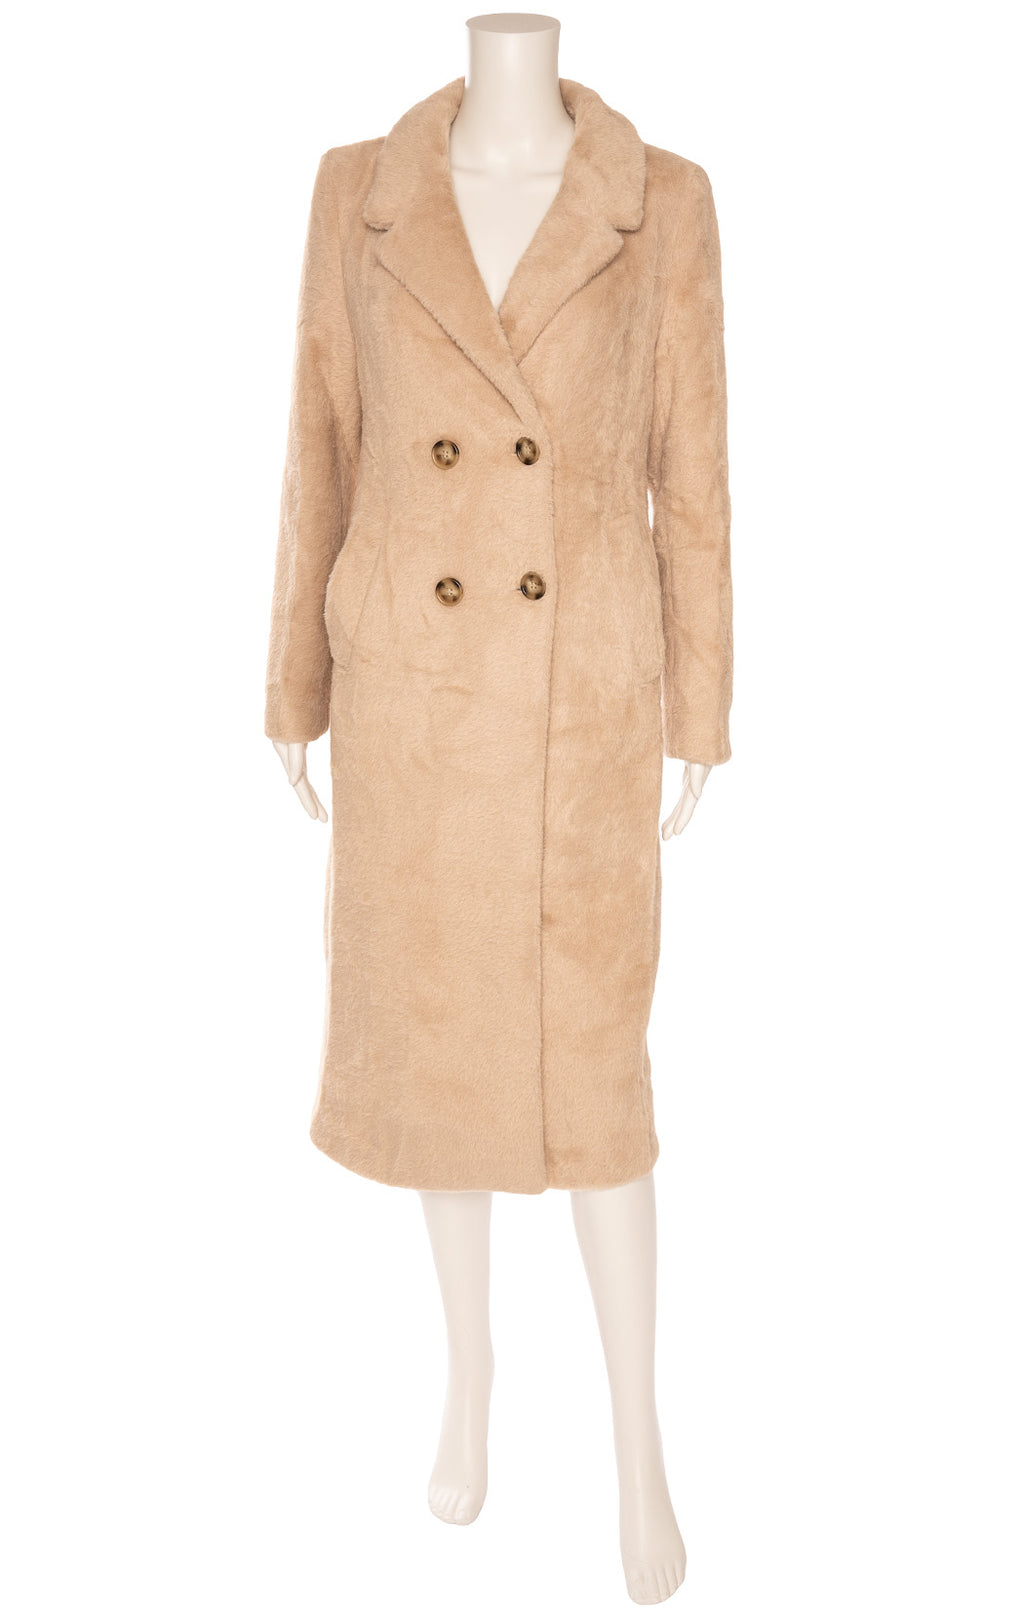 ASTR with tags Coat Size: Small